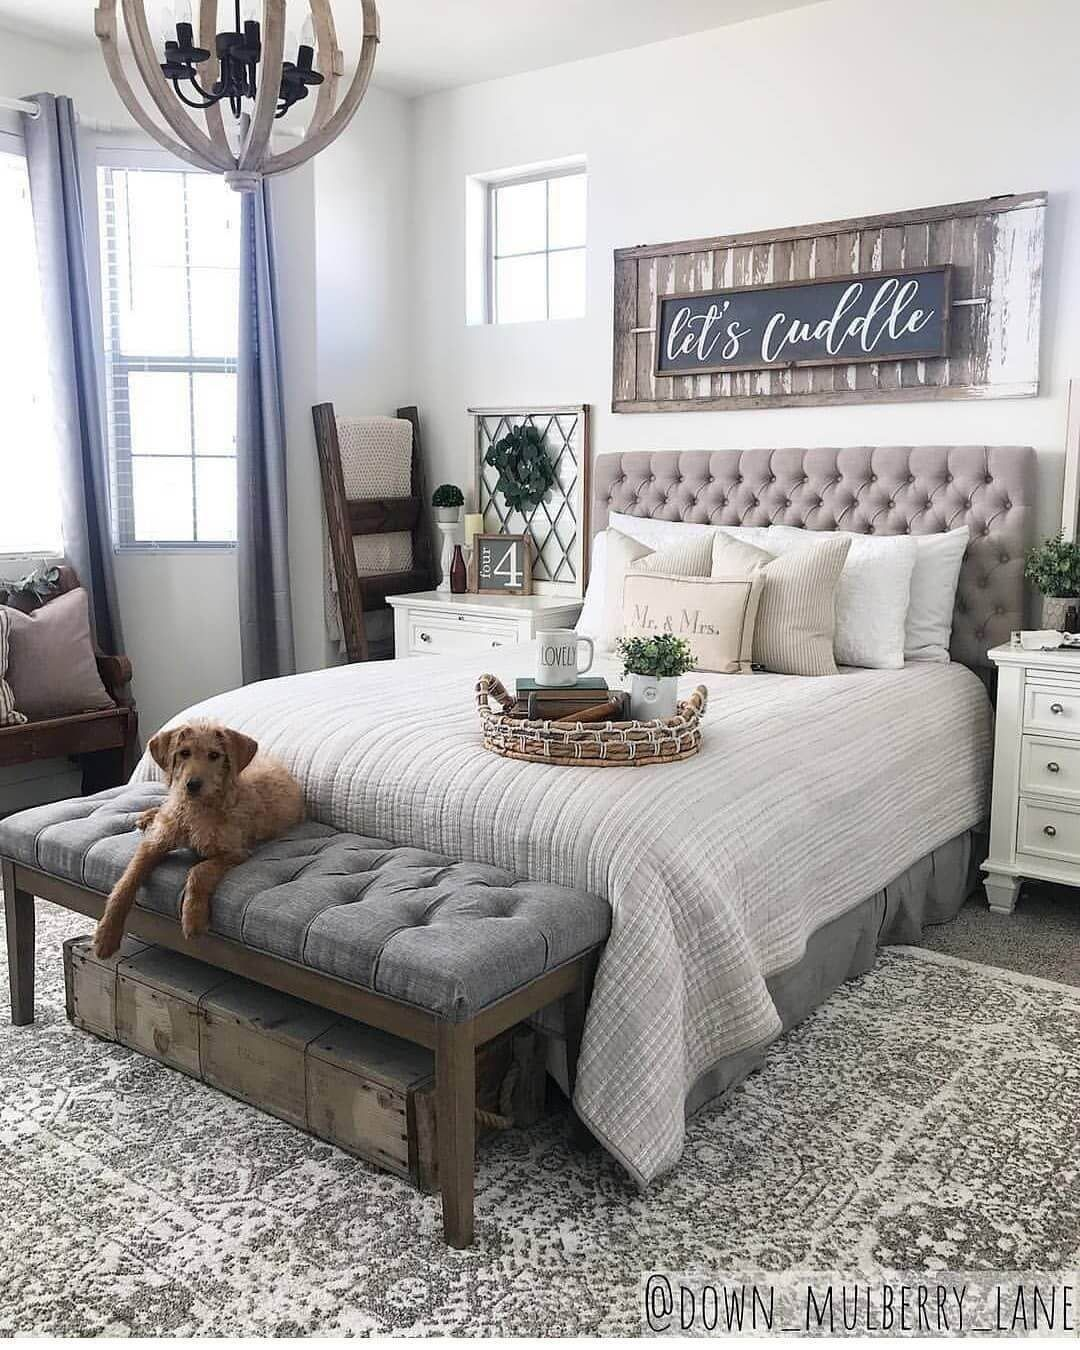 25 Absorbing Rustic Bedroom Concepts (Passions For Sleeping) - 9A